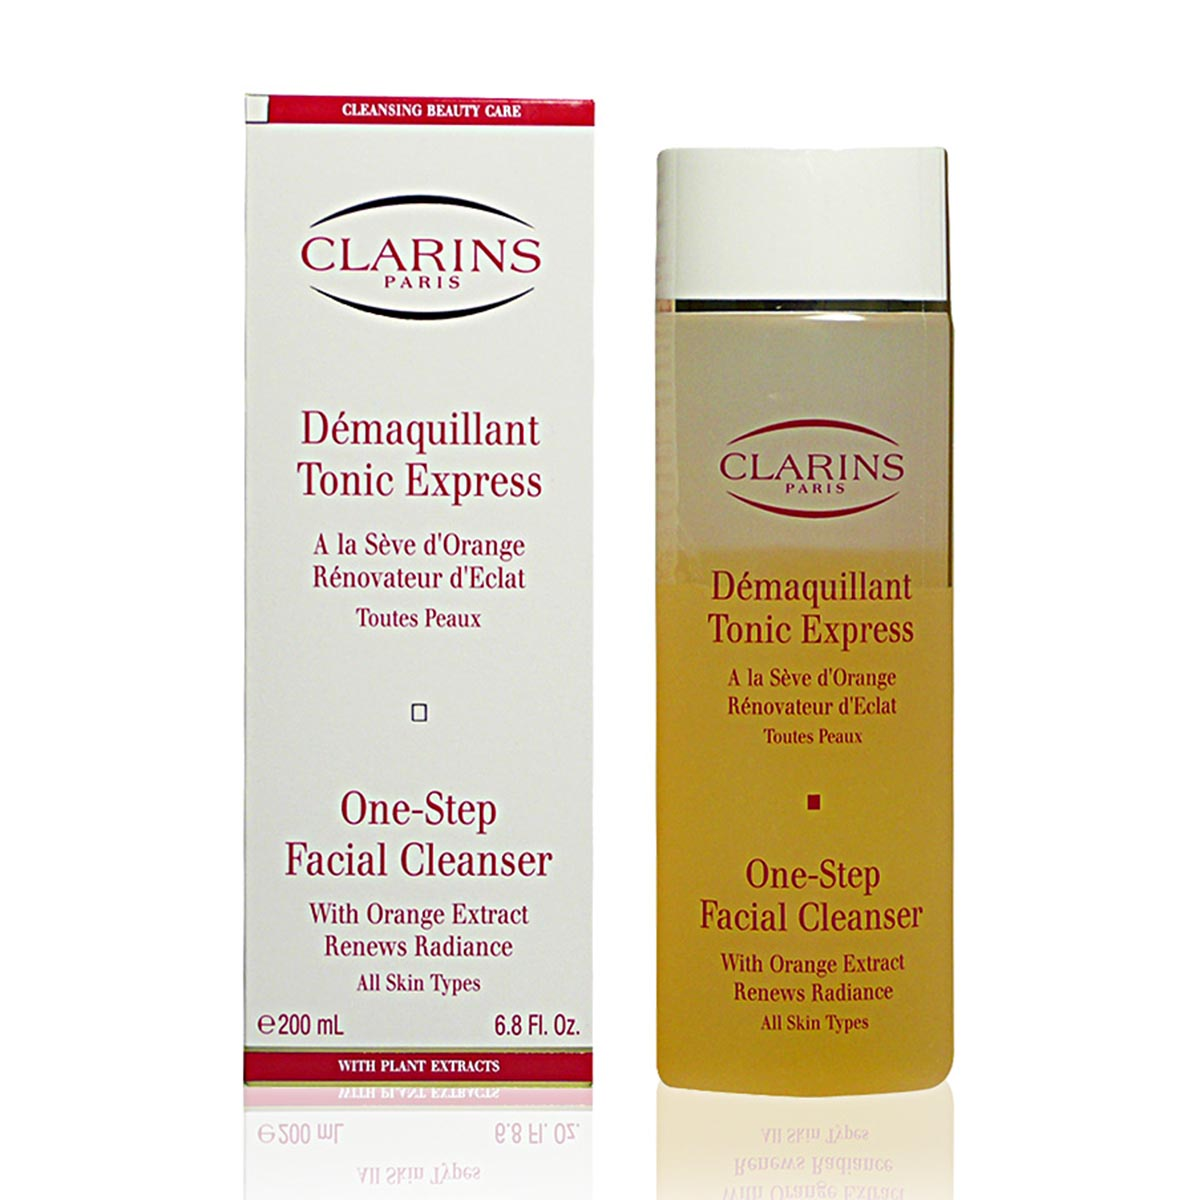 Clarins tonic express demaquillant all skins 200ml